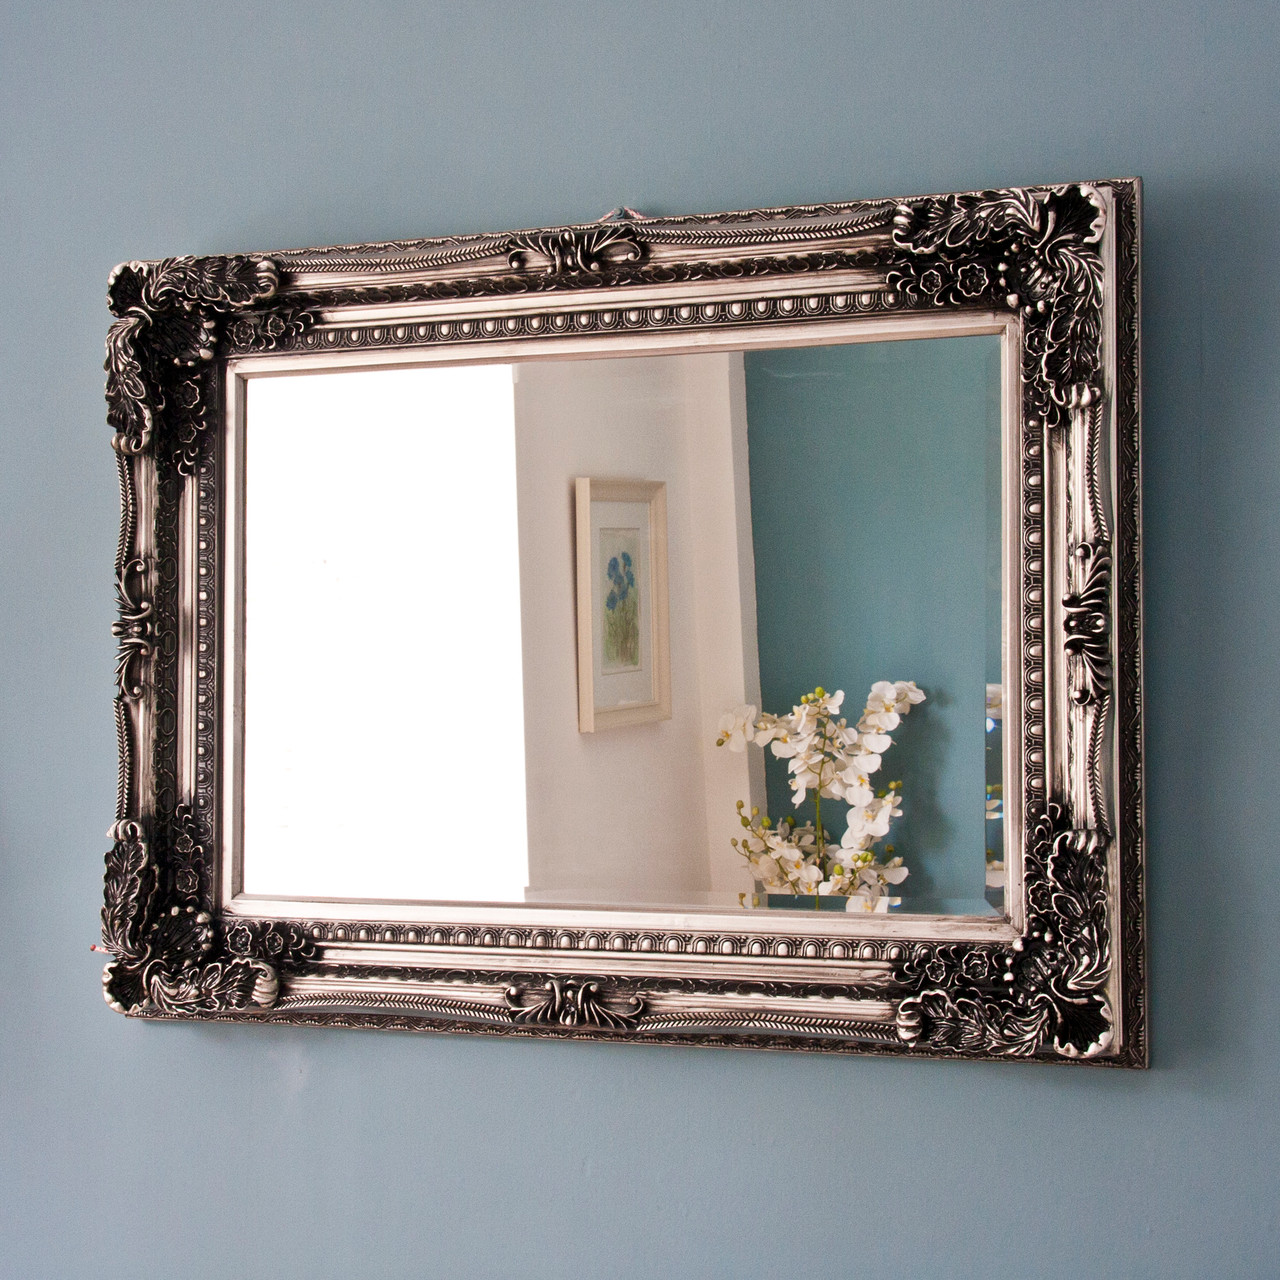 Image of Embellished Dark Silver Design Mirror